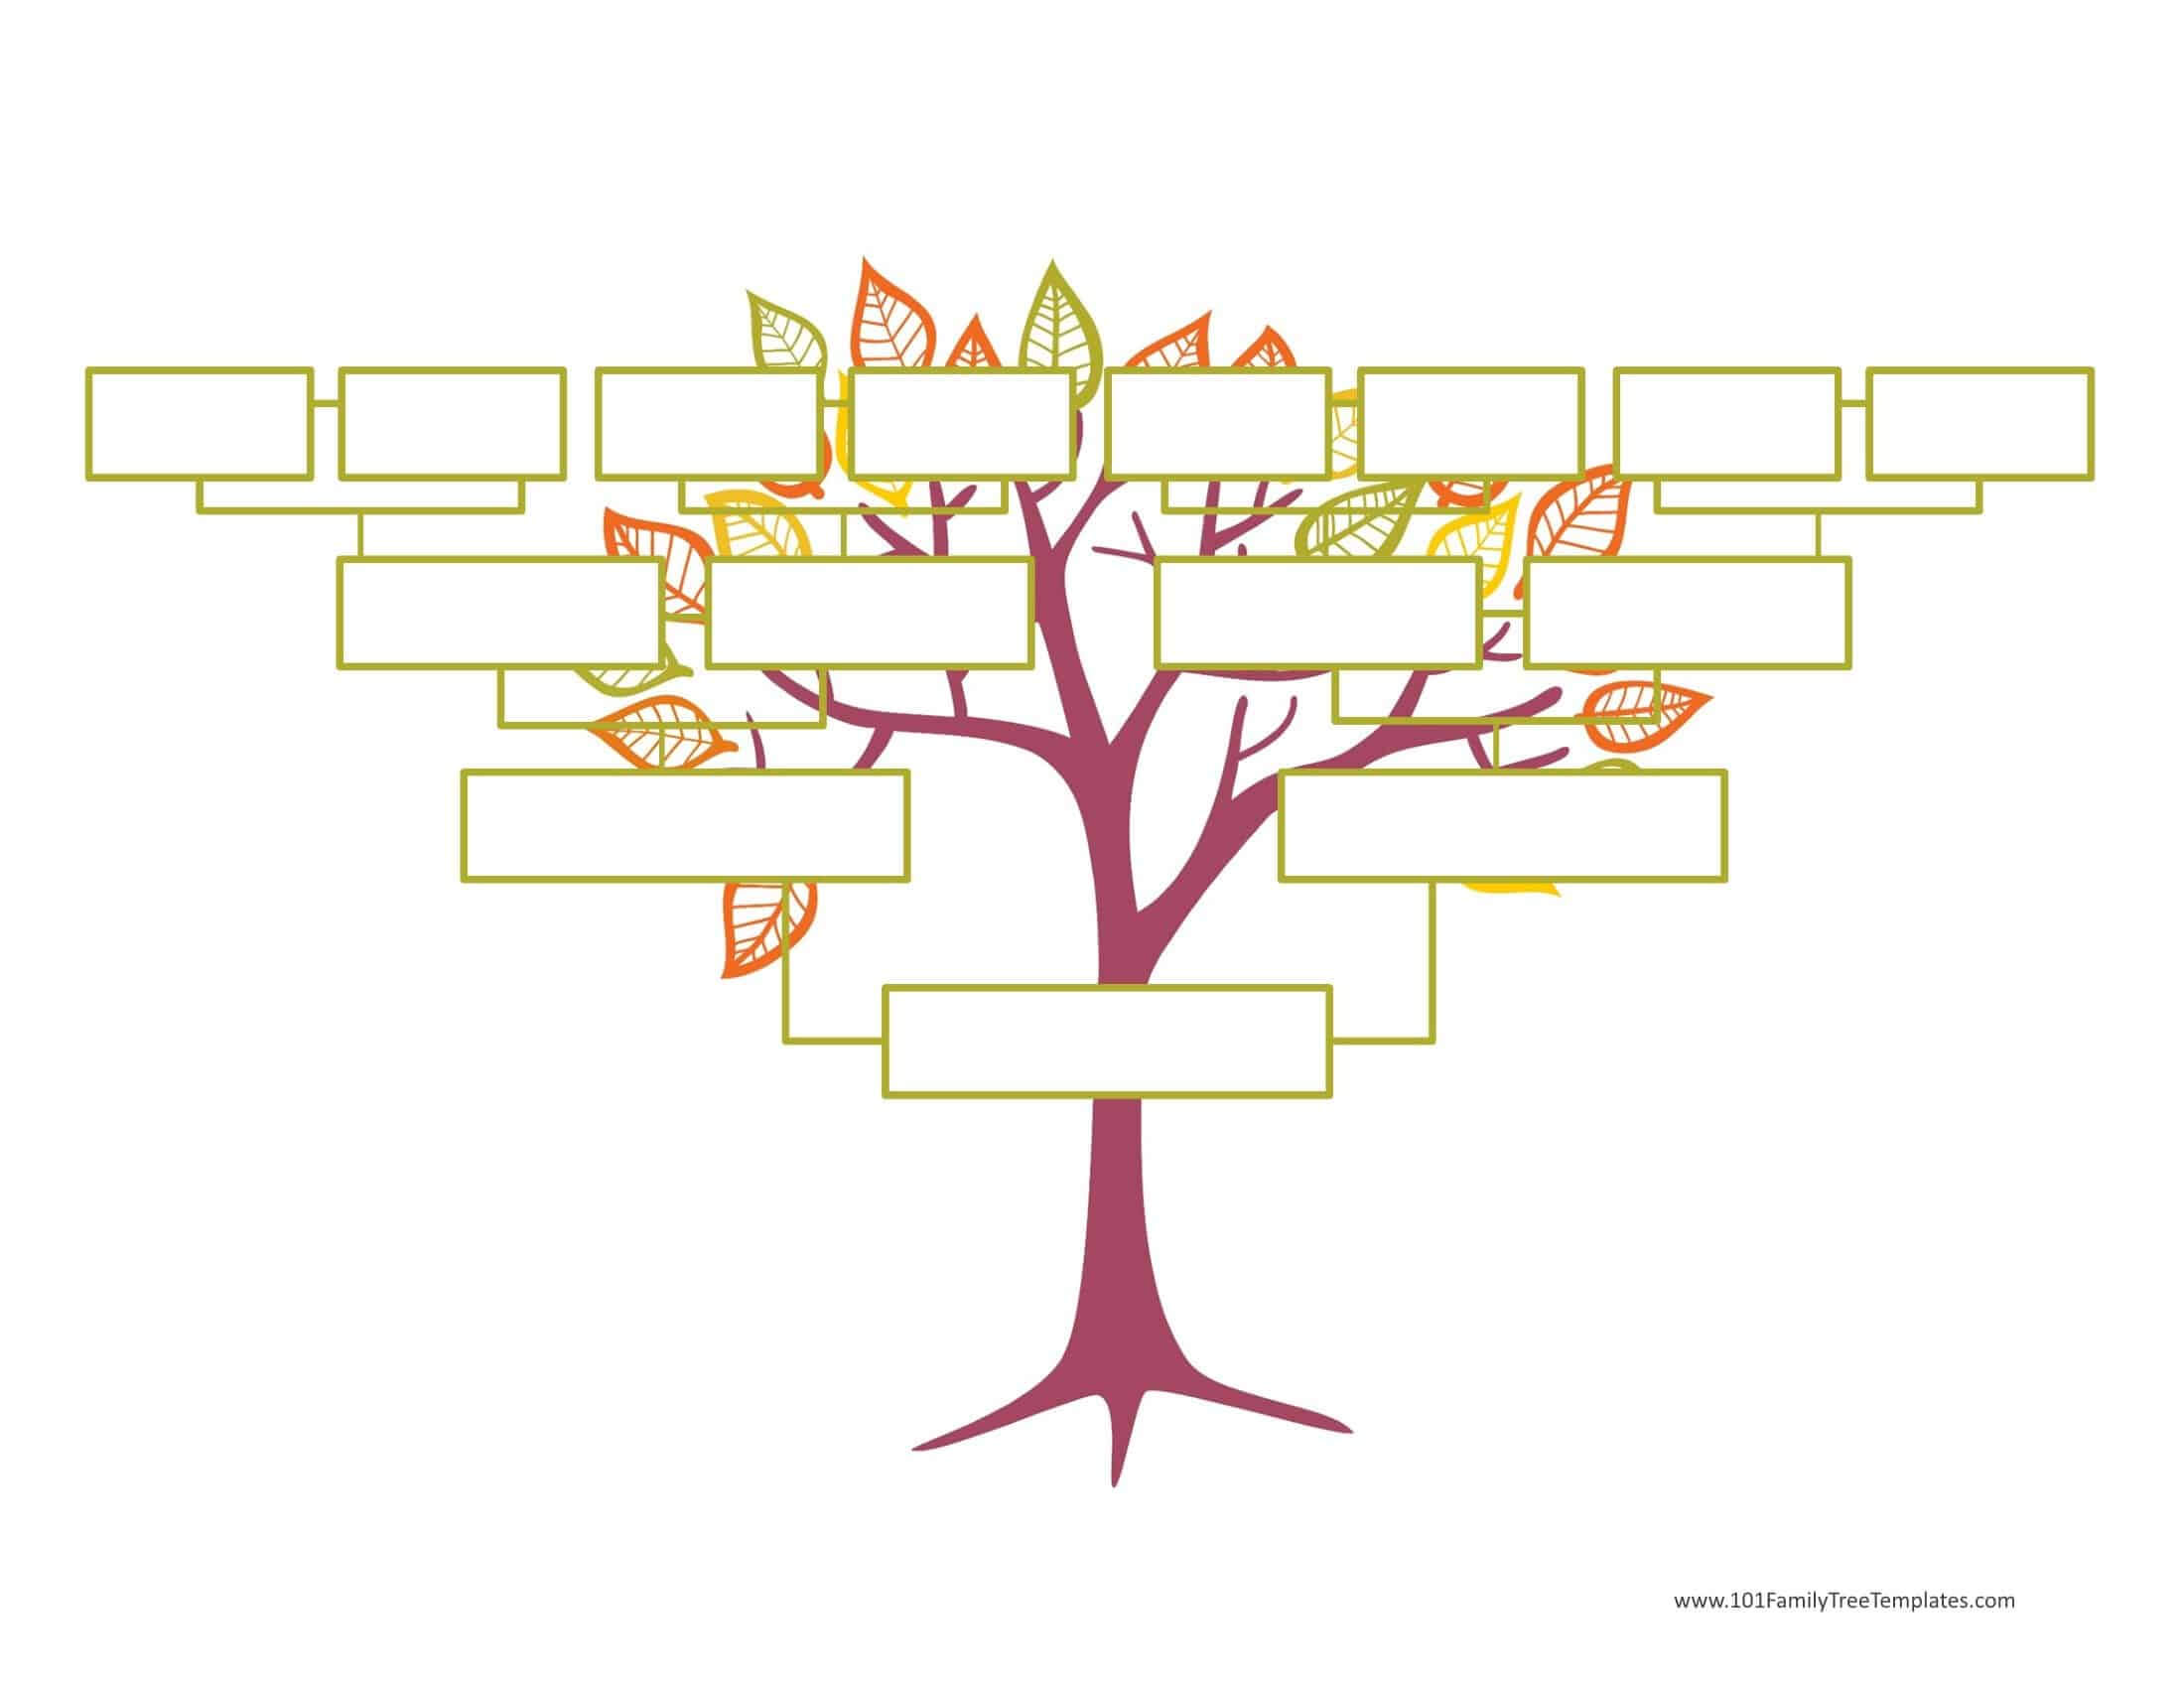 Blank Family Tree Template | Free Instant Download Inside Fill In The Blank Family Tree Template